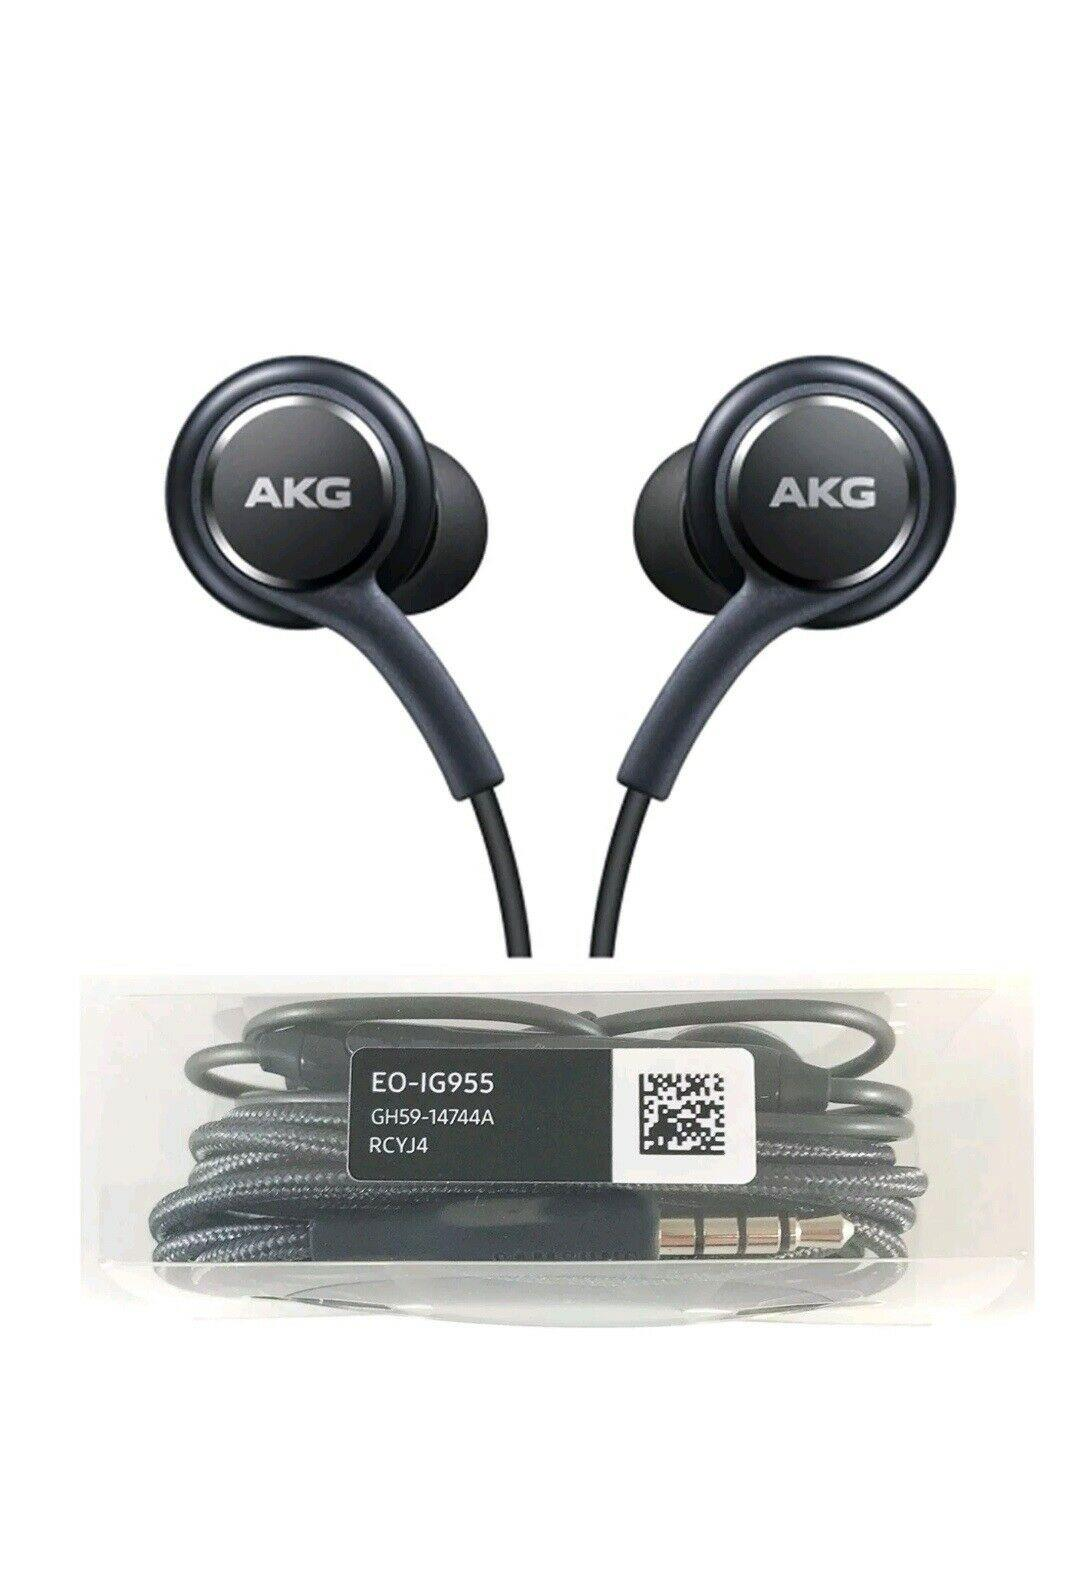 AKG Headphones For Samsung Galaxy S9 S8 Plus Note 8 ...